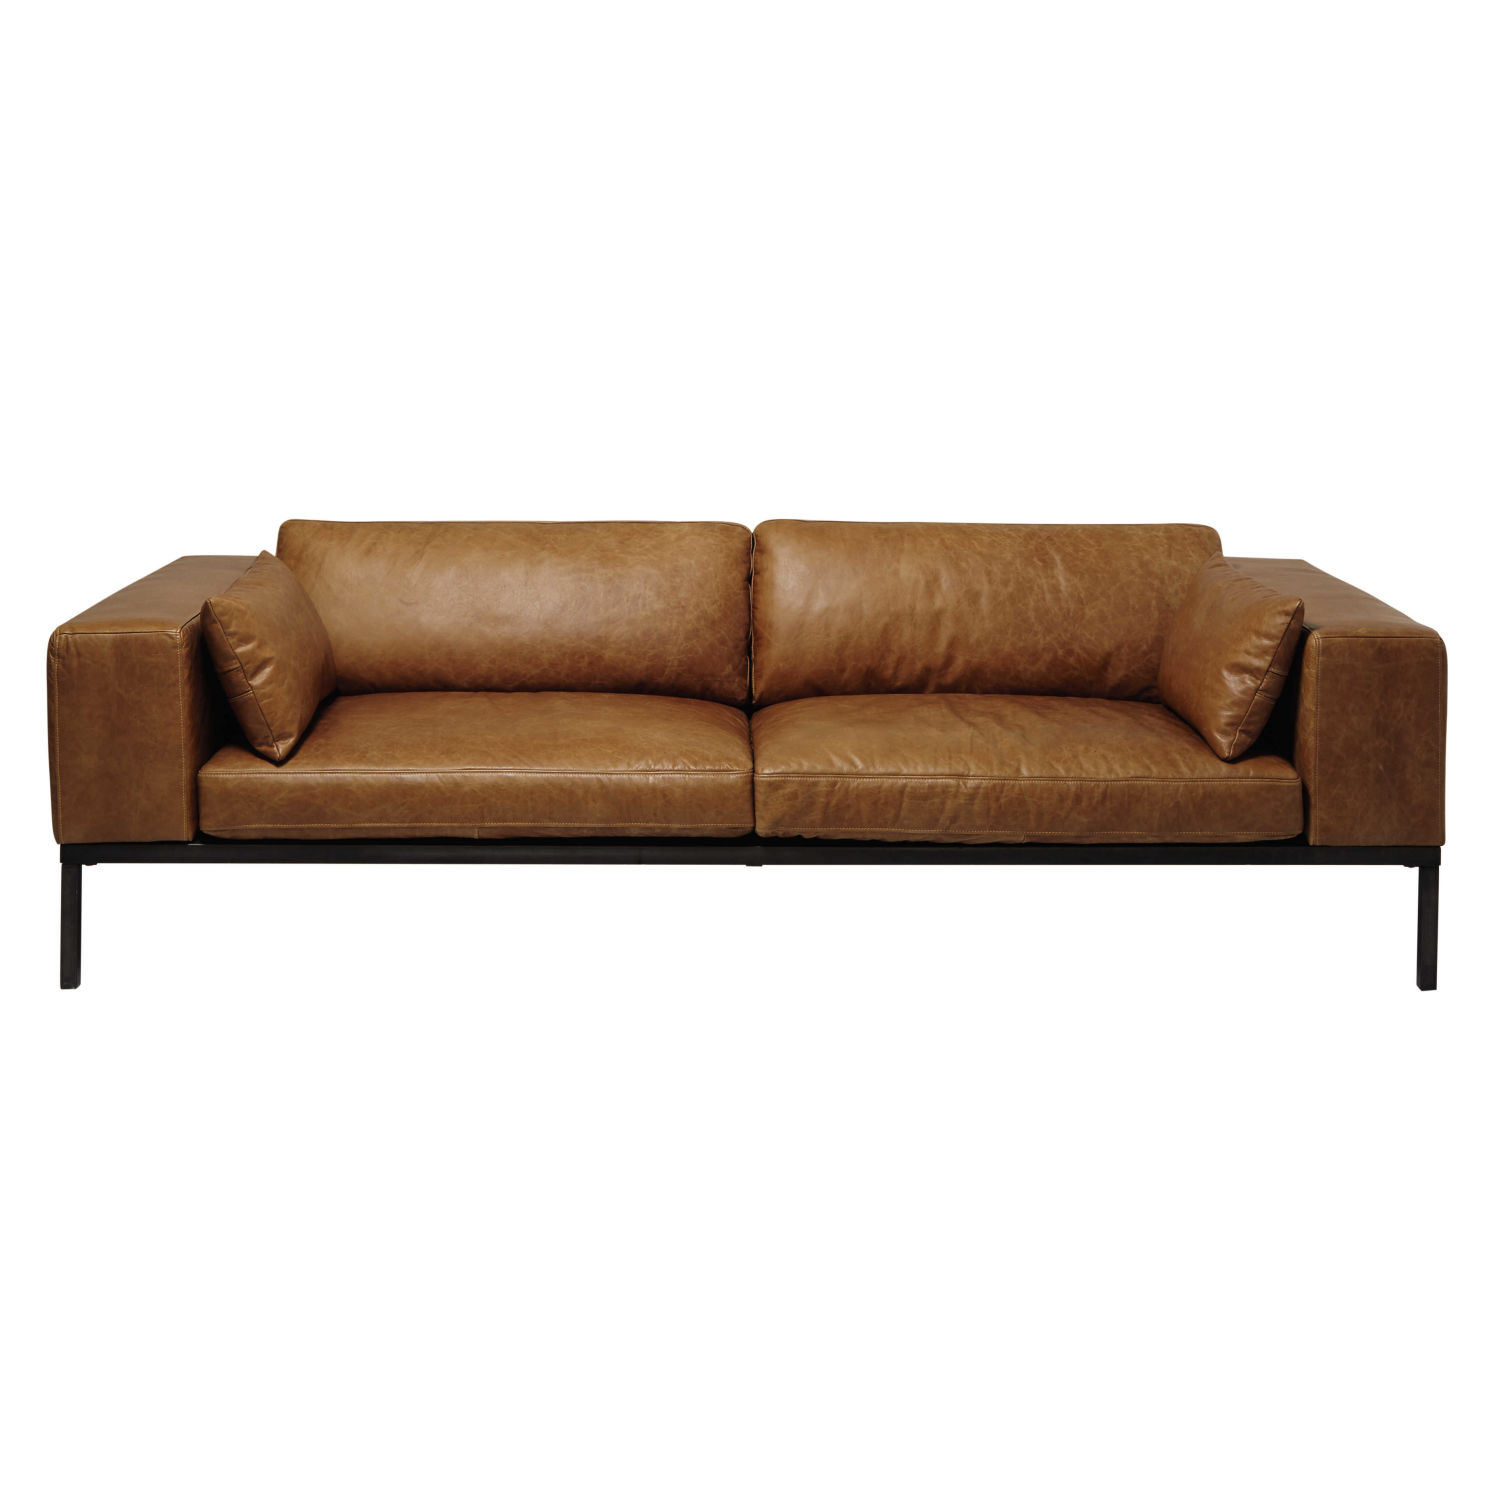 camel colored leather sofas slide out sofa sleeper 4 seater in maisons du monde